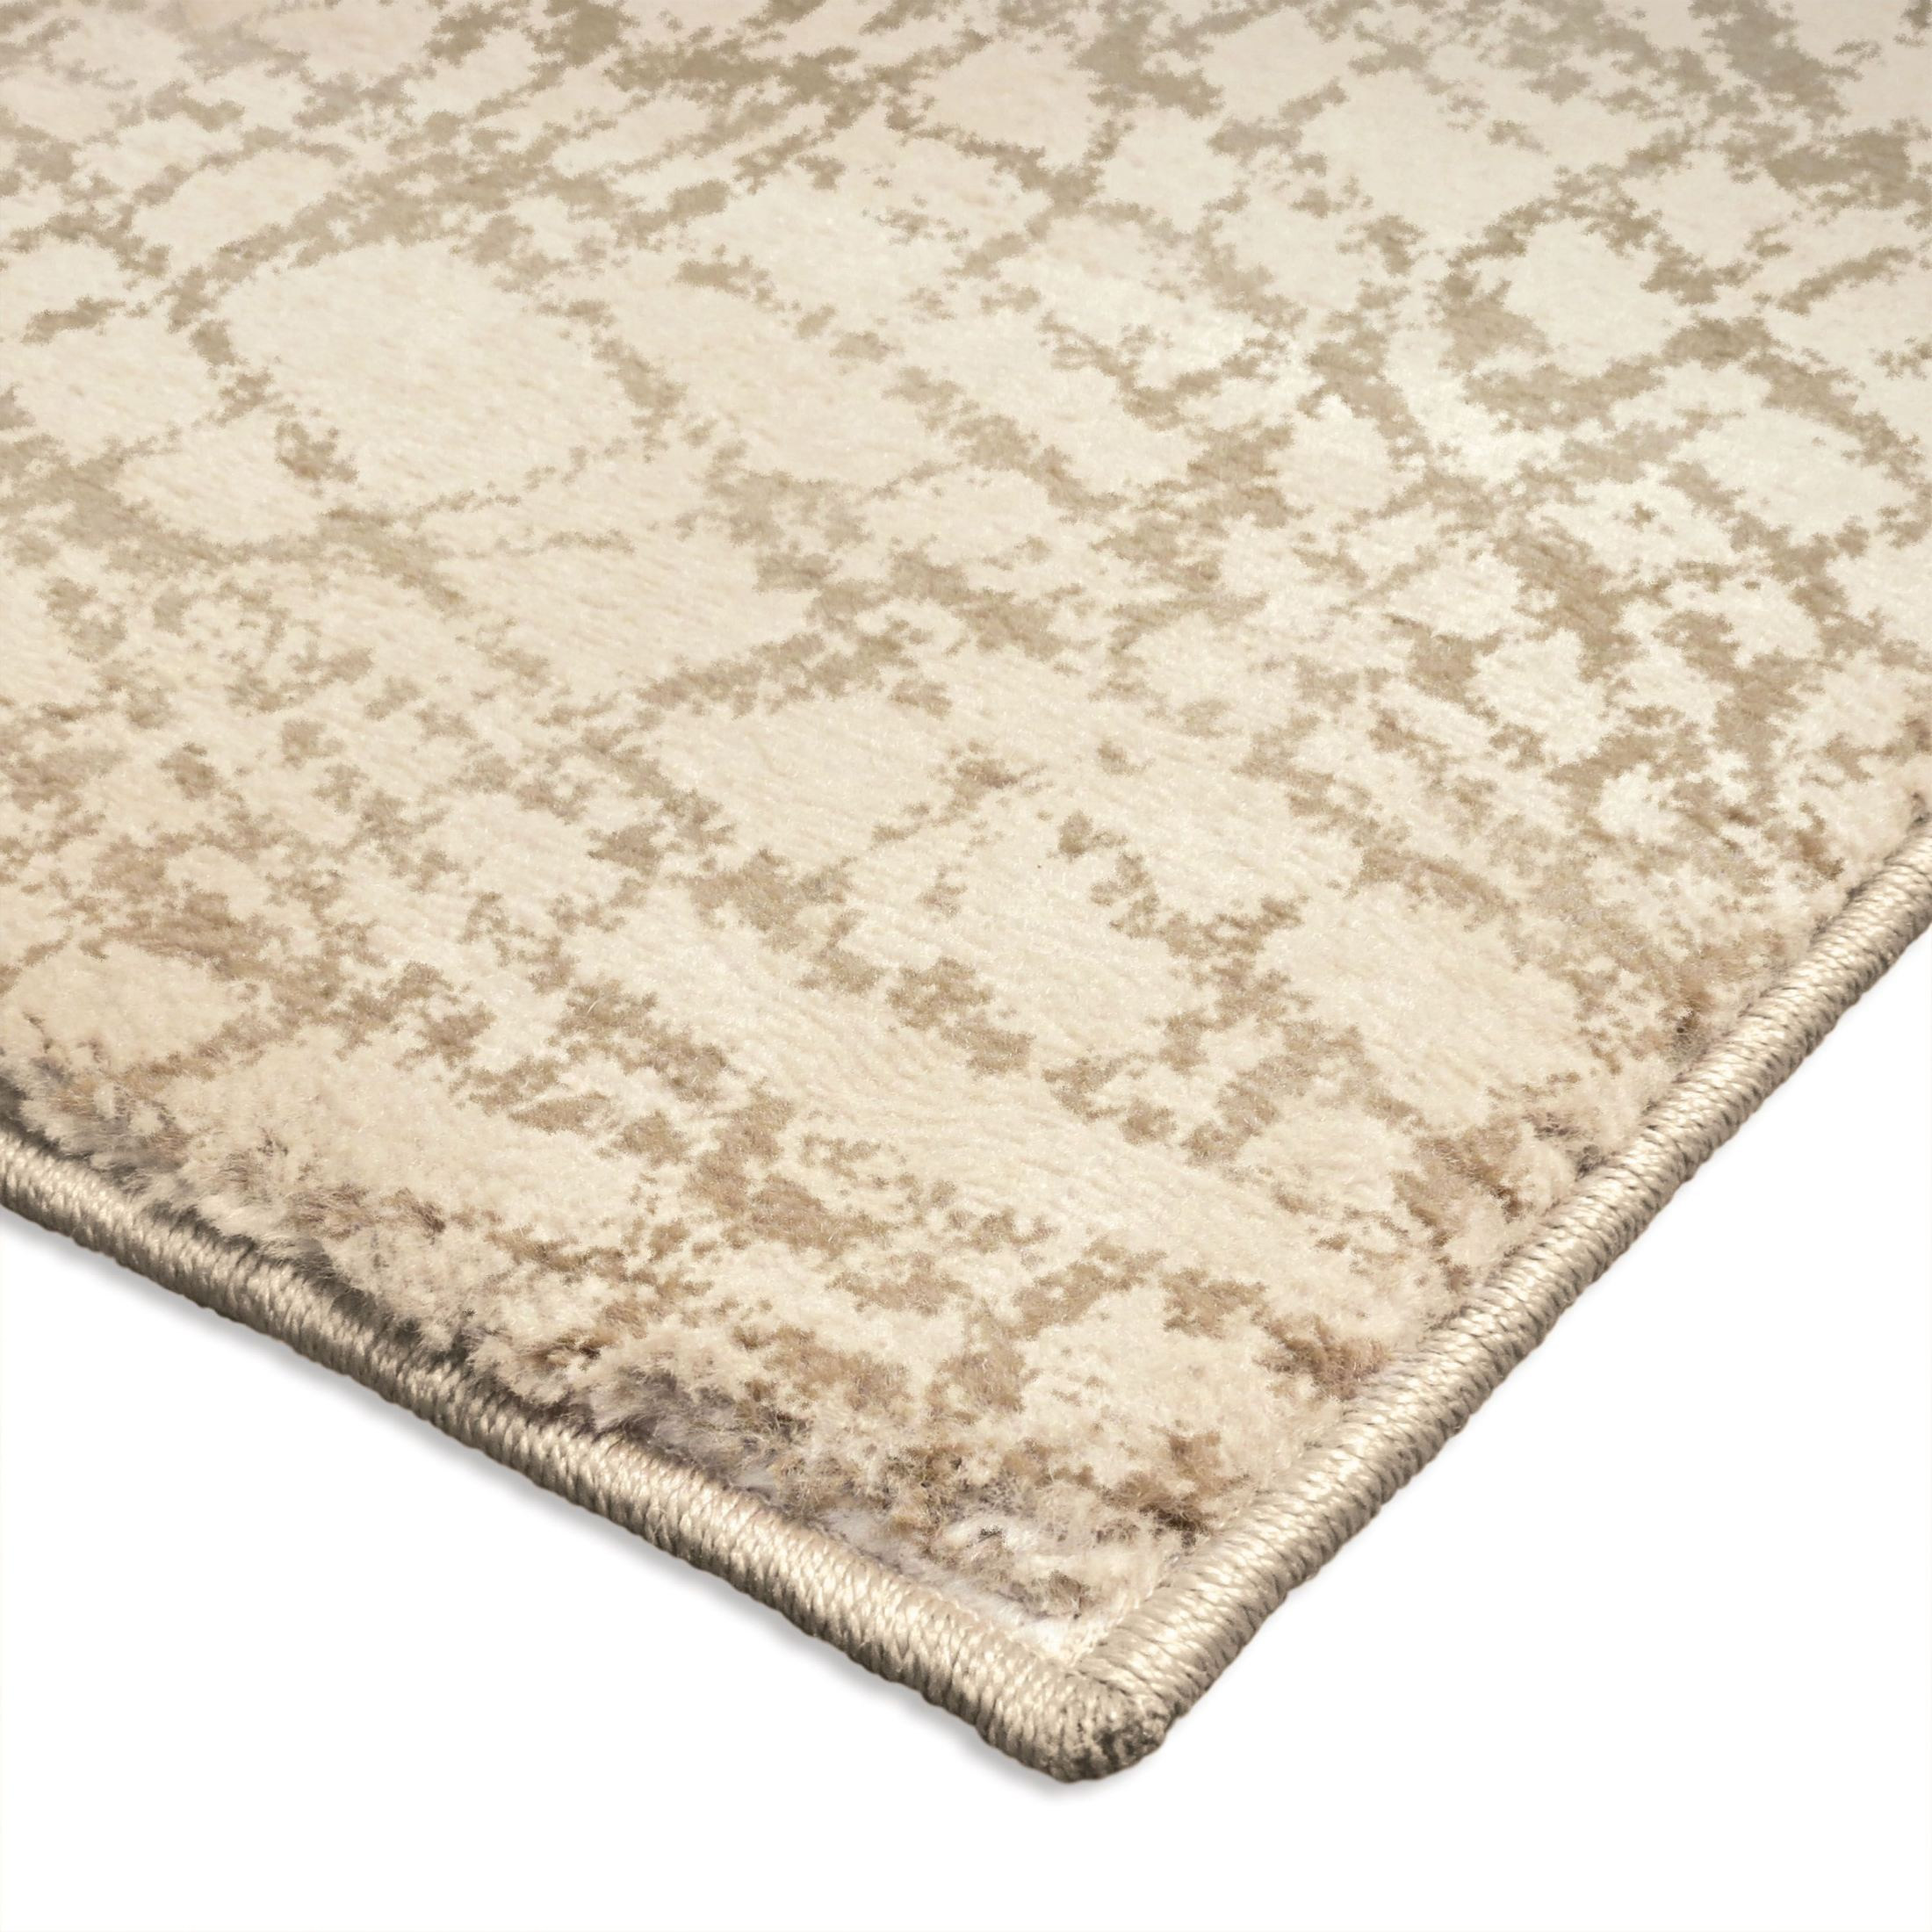 Orian Rugs Plush Abstract Uphill Ivory Area Small Rug